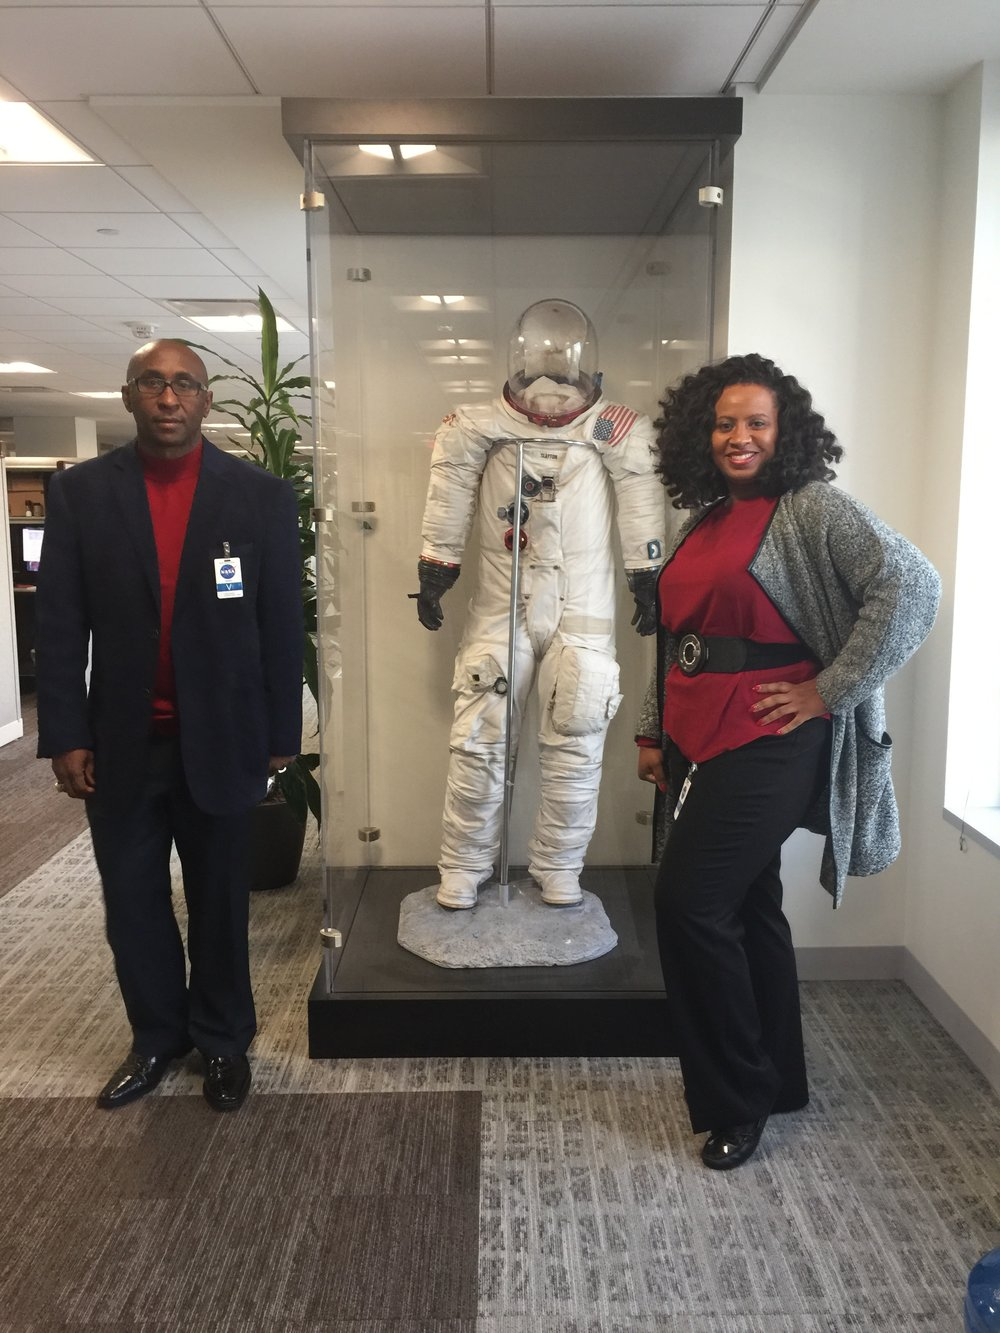 CEO, Cedric Lancaster & Director of Communications, Tonette Delk, inside the NASA Headquarters - Washington, DC. - December, 2016